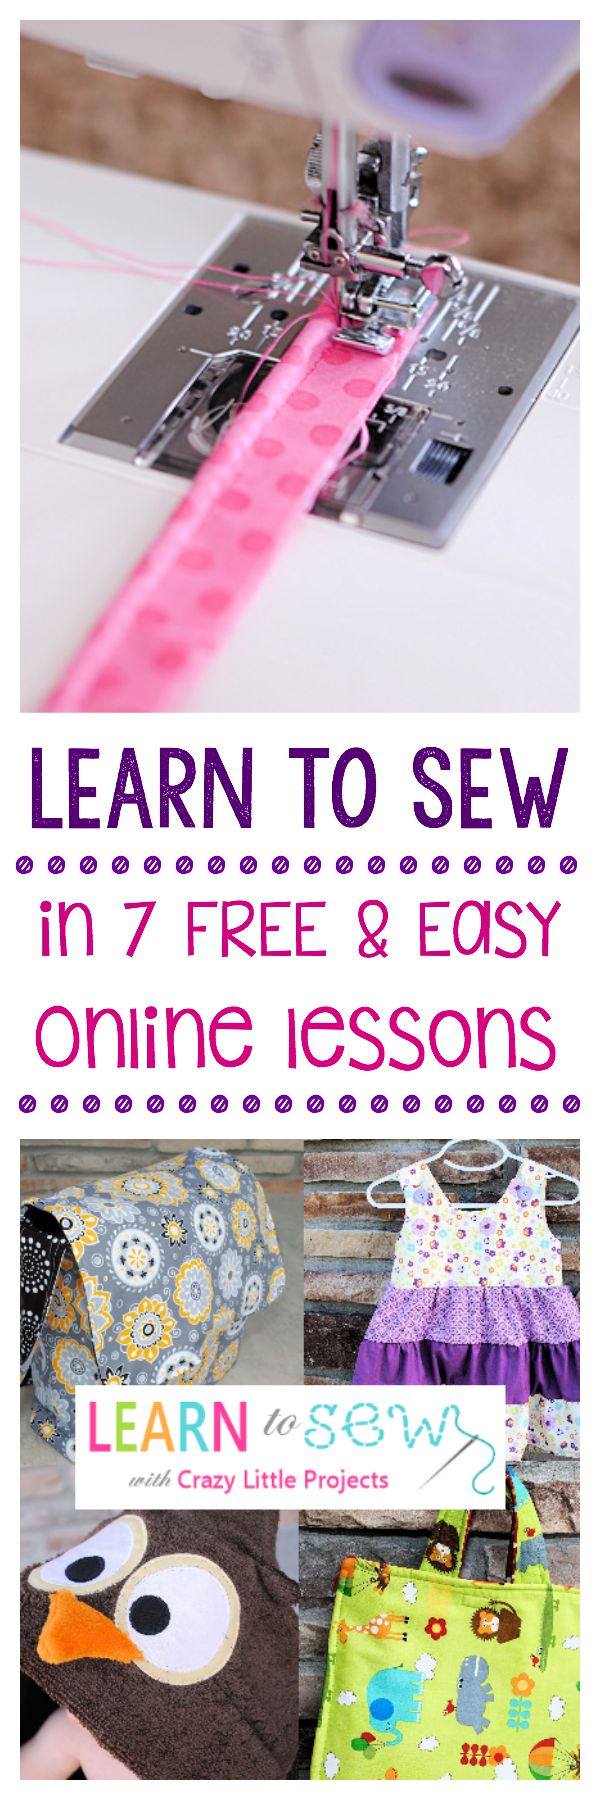 Learn to Sew with these easy, free online lessons! #sew